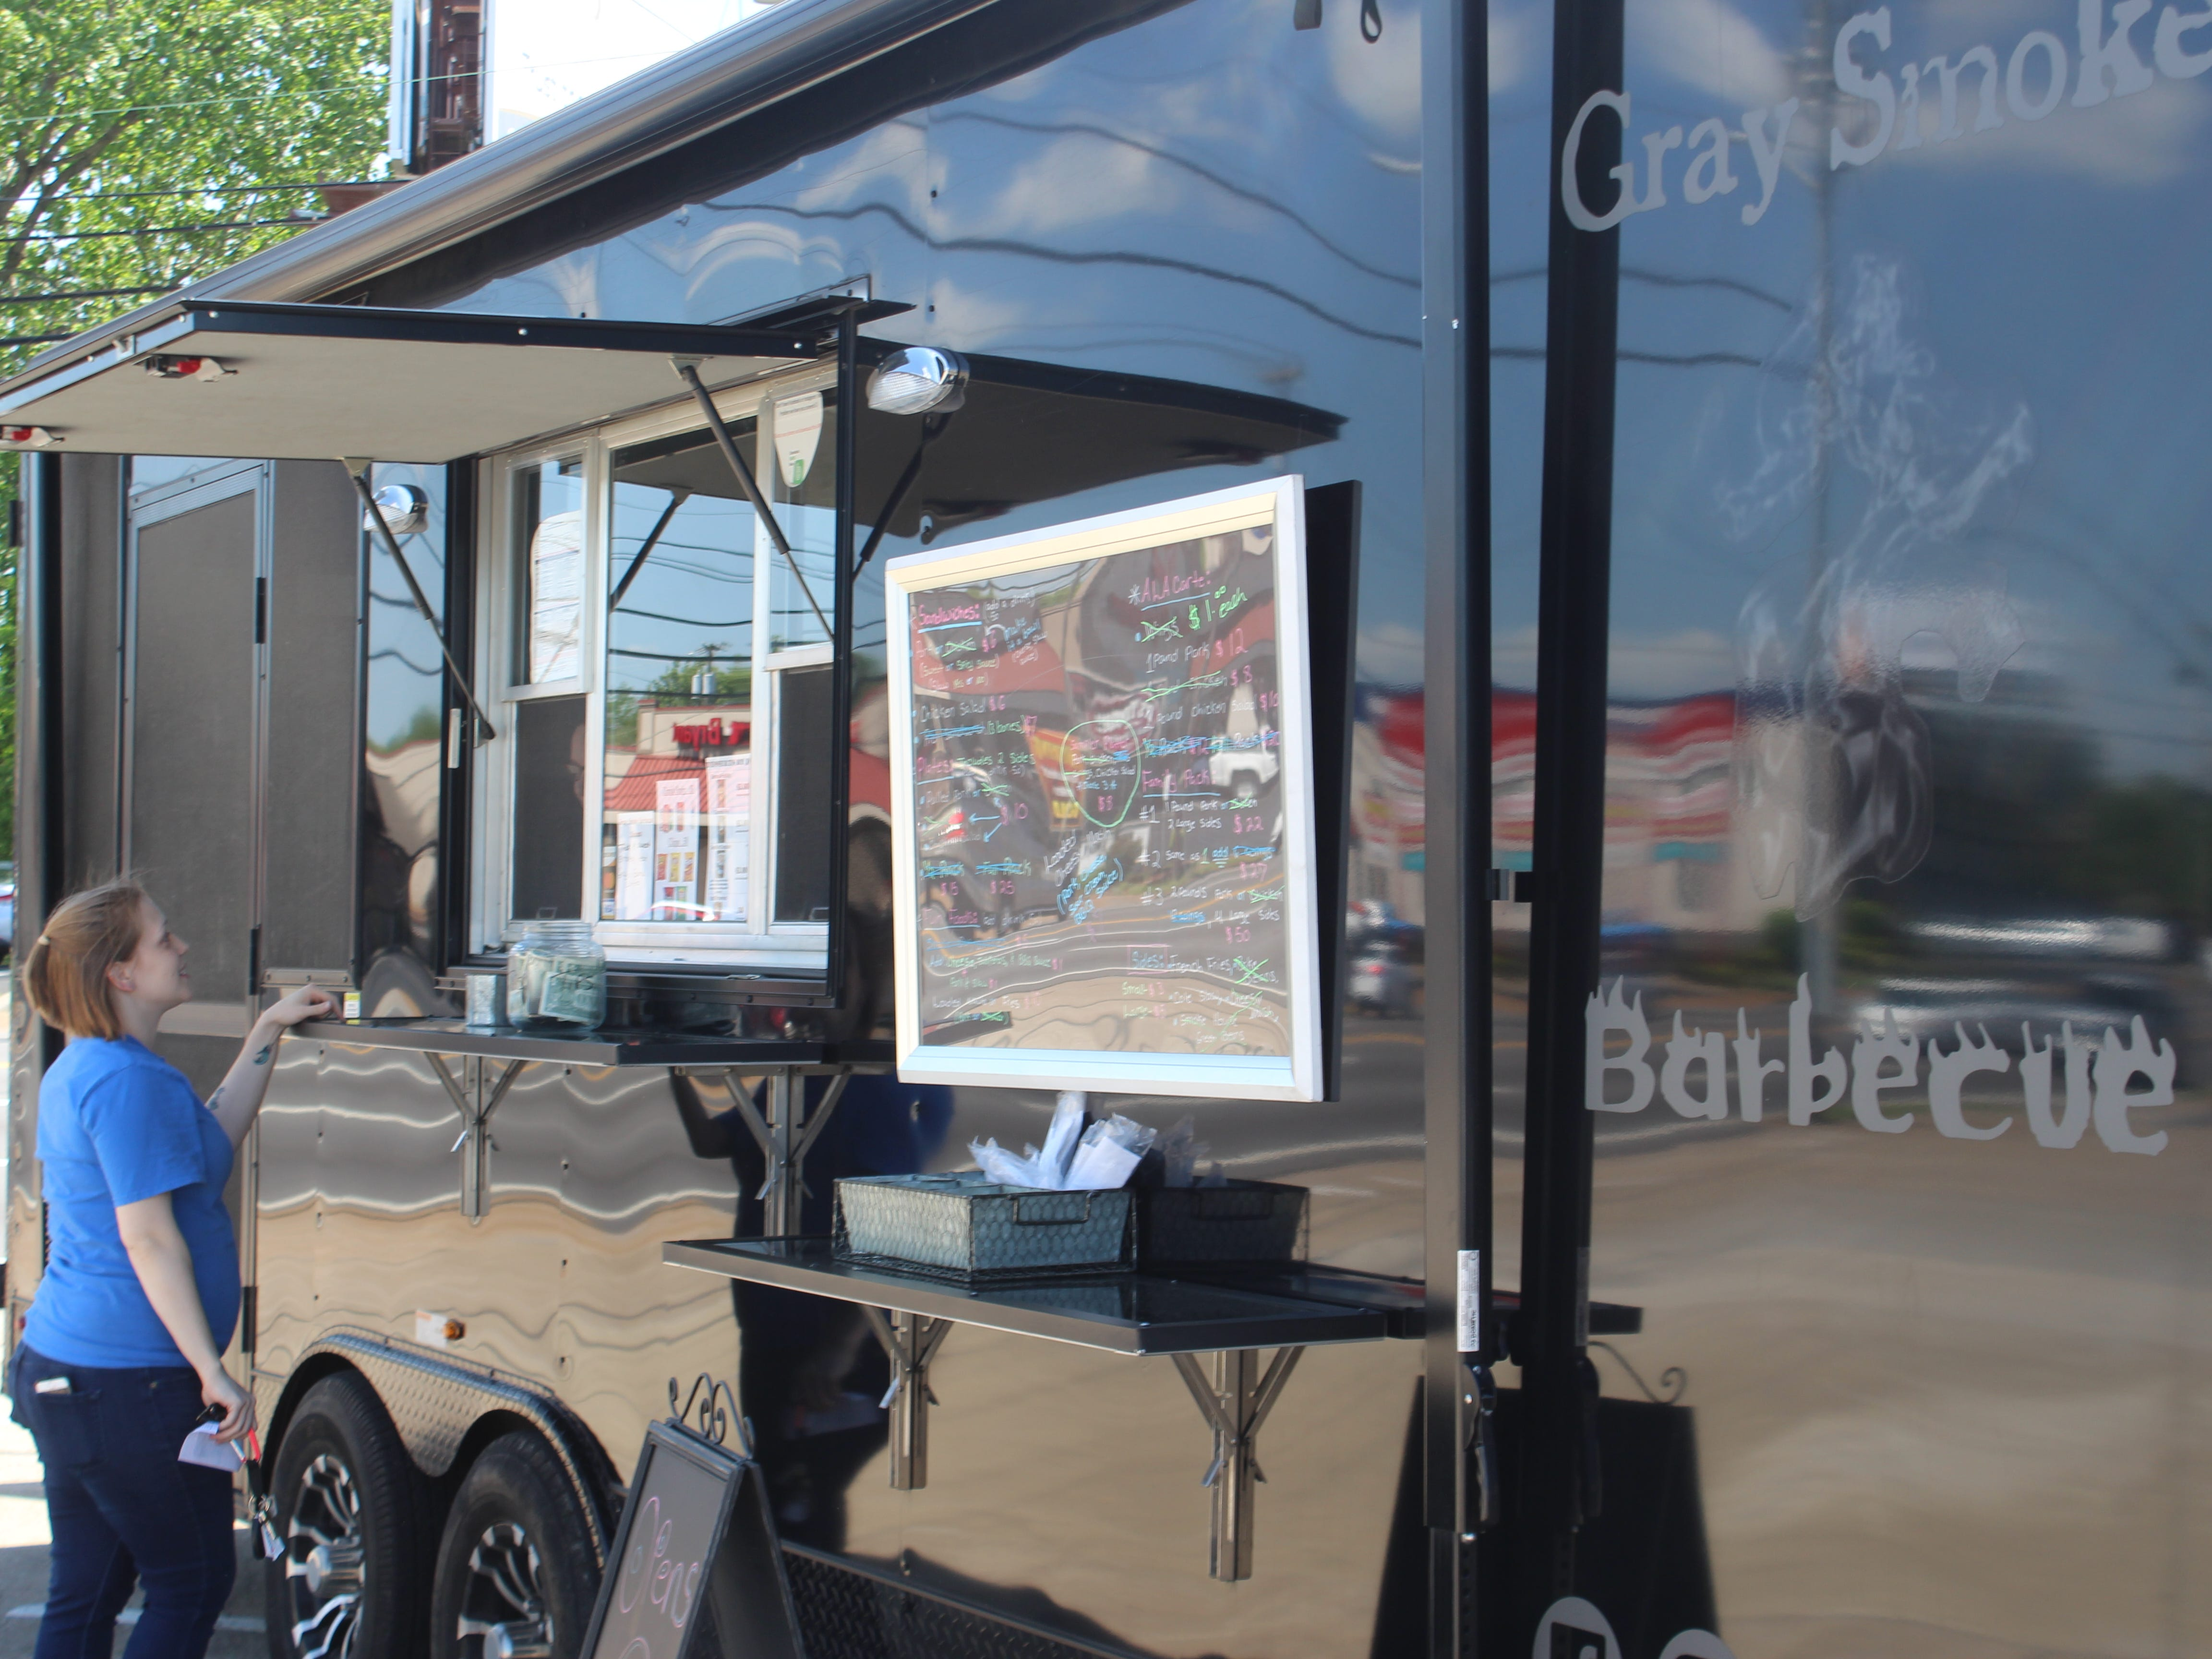 A customer waits for her order at the Gray Smoke Barbecue food truck on April 26, 2019.